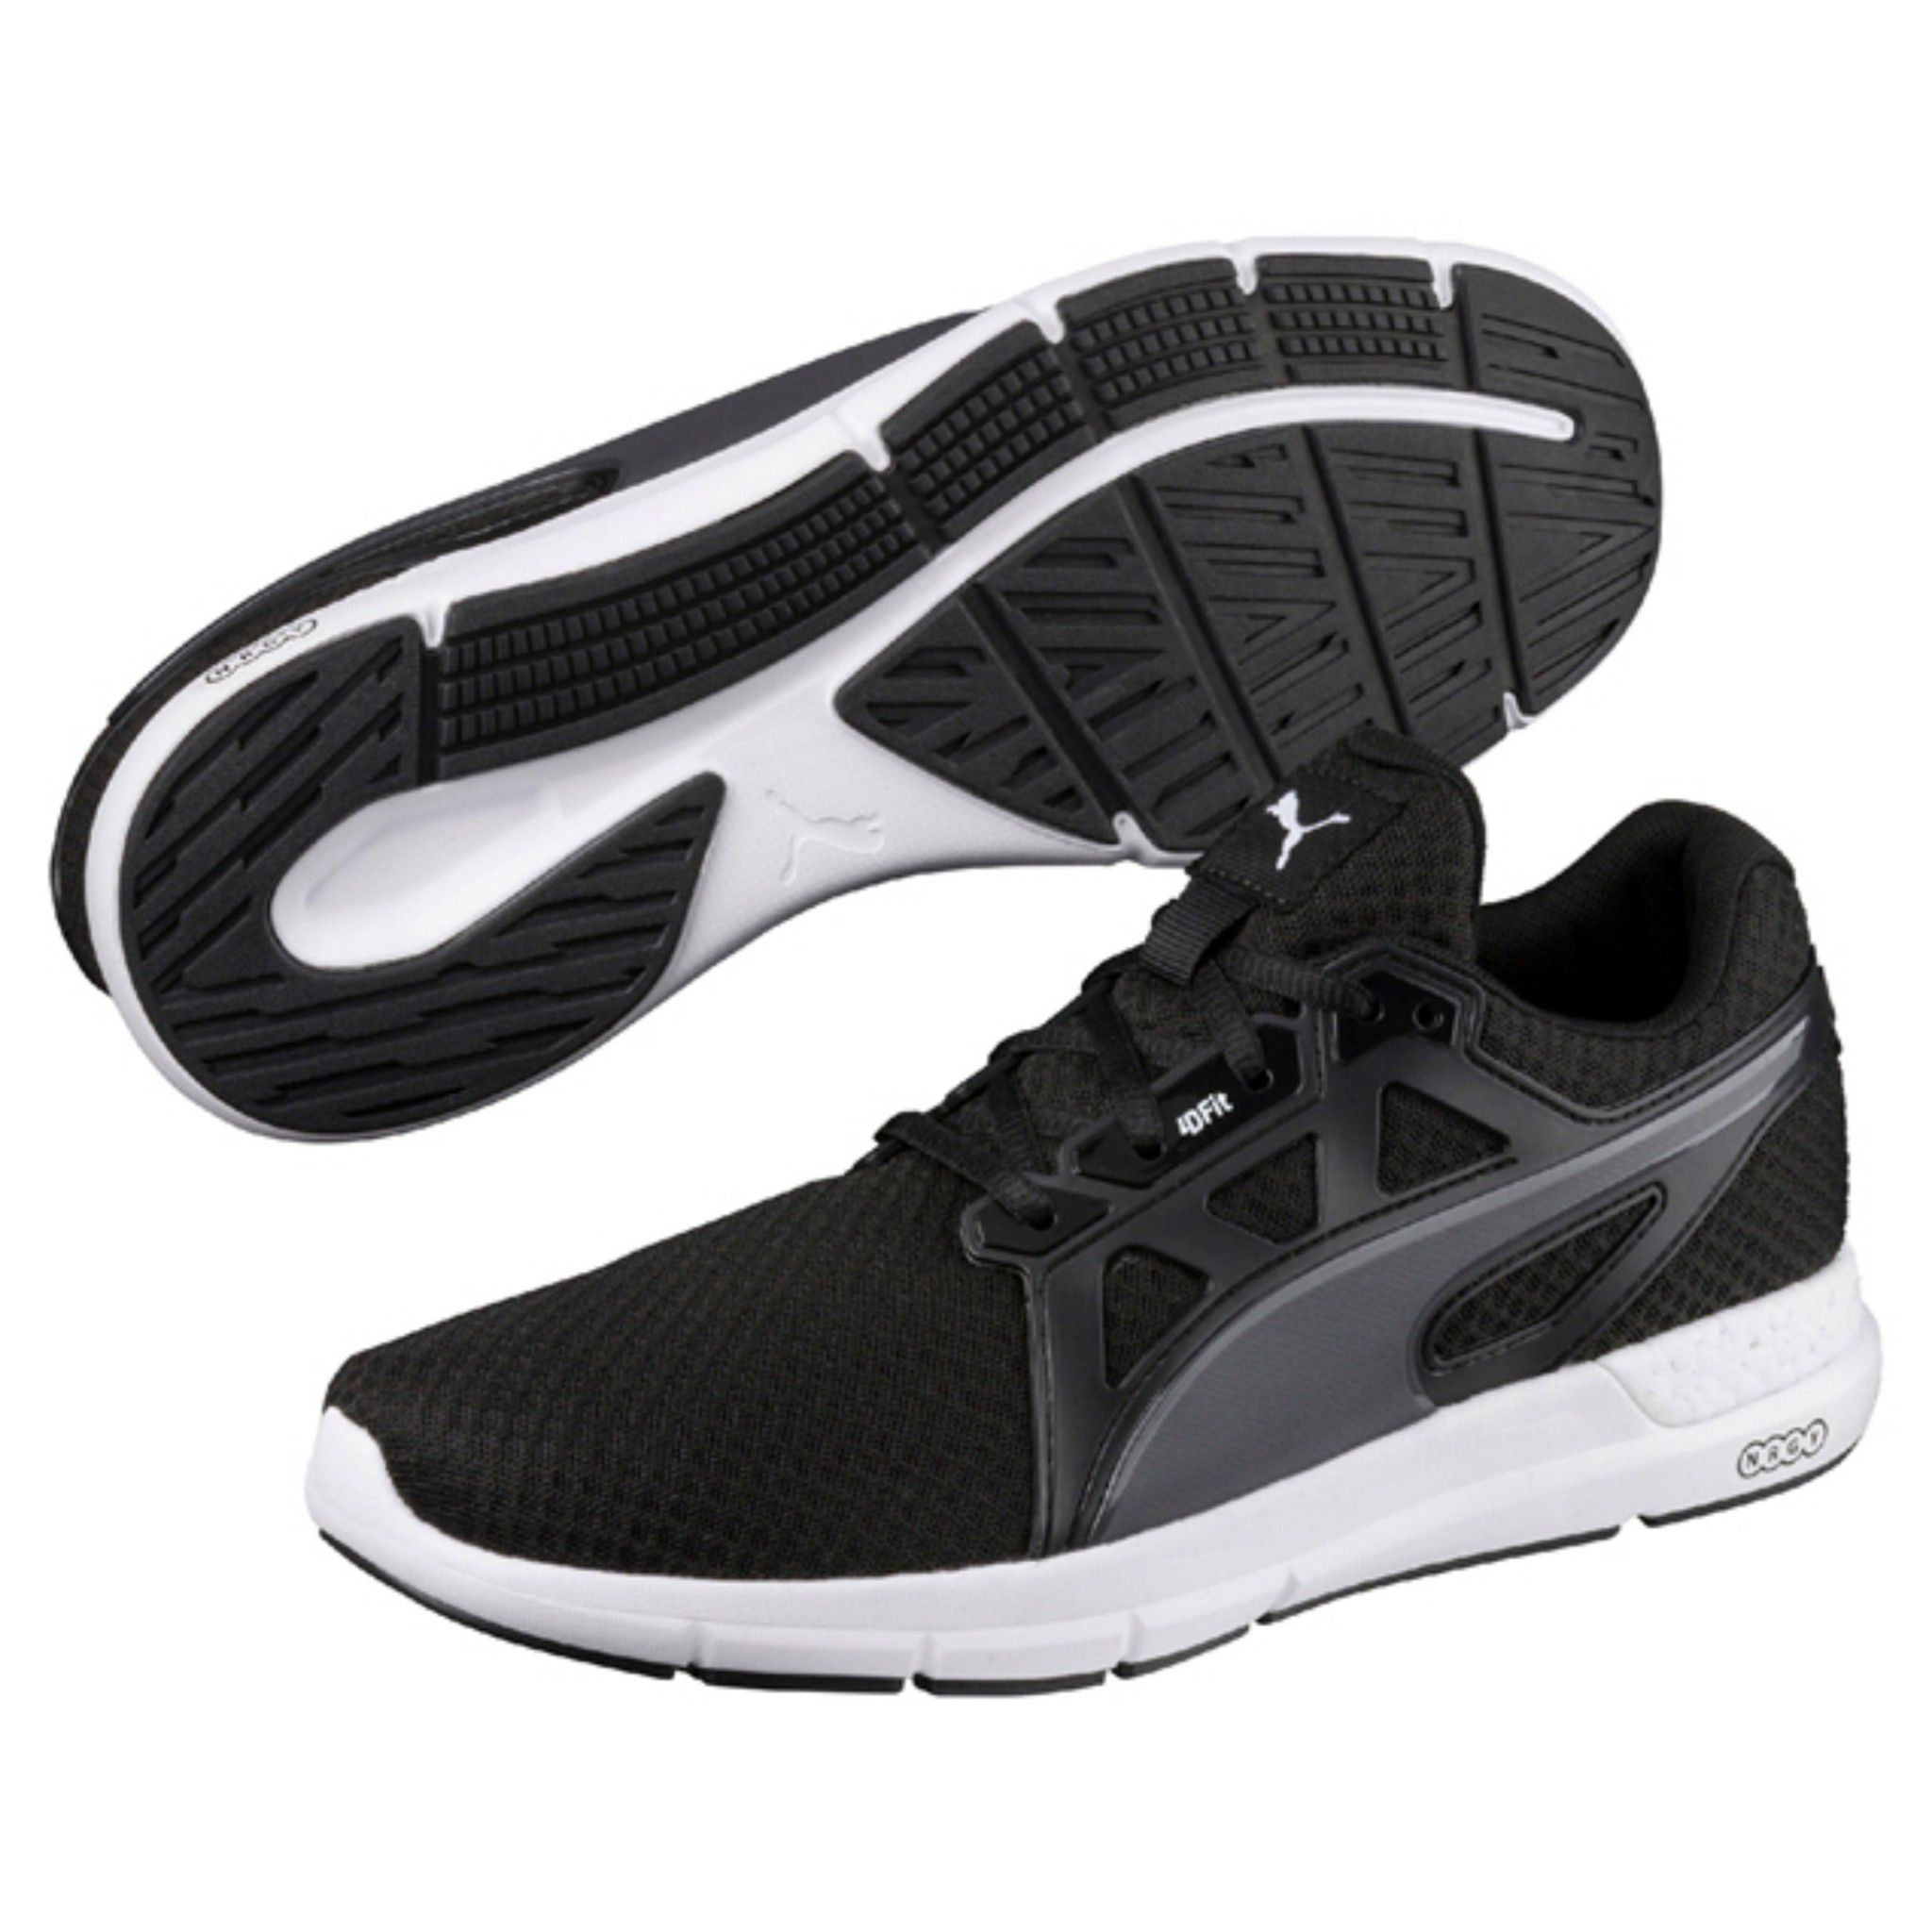 Puma NRGY Dynamo Black Running Shoes Puma NRGY Dynamo Black Running Shoes  ... 6d640c5a3